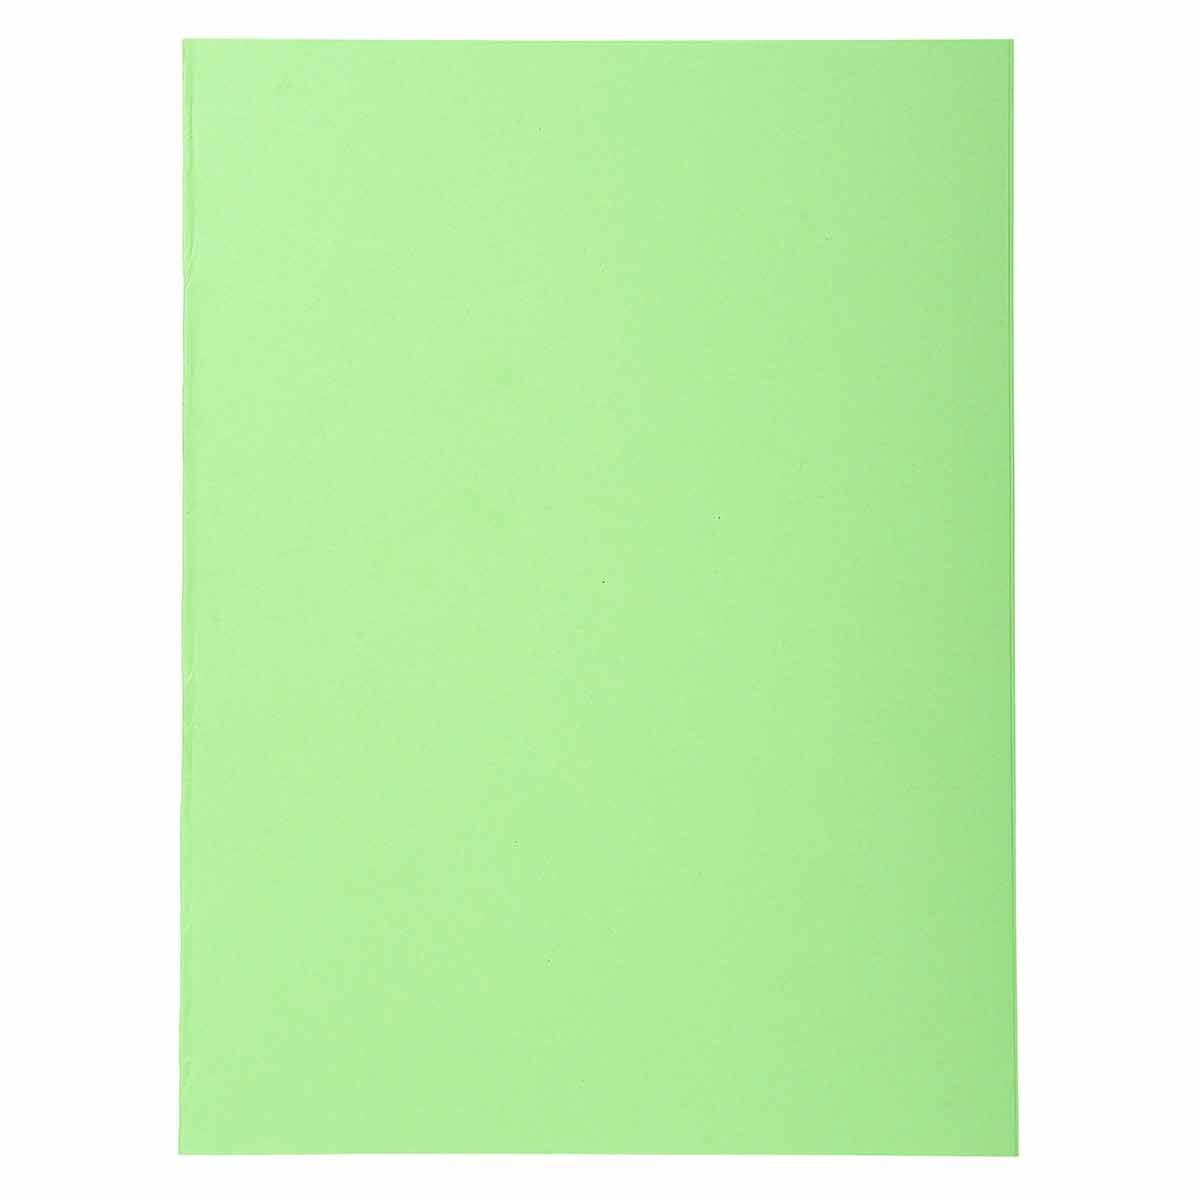 Exacompta Forever Square Cut Folders A4 220gsm Pack of 500 Bright Green